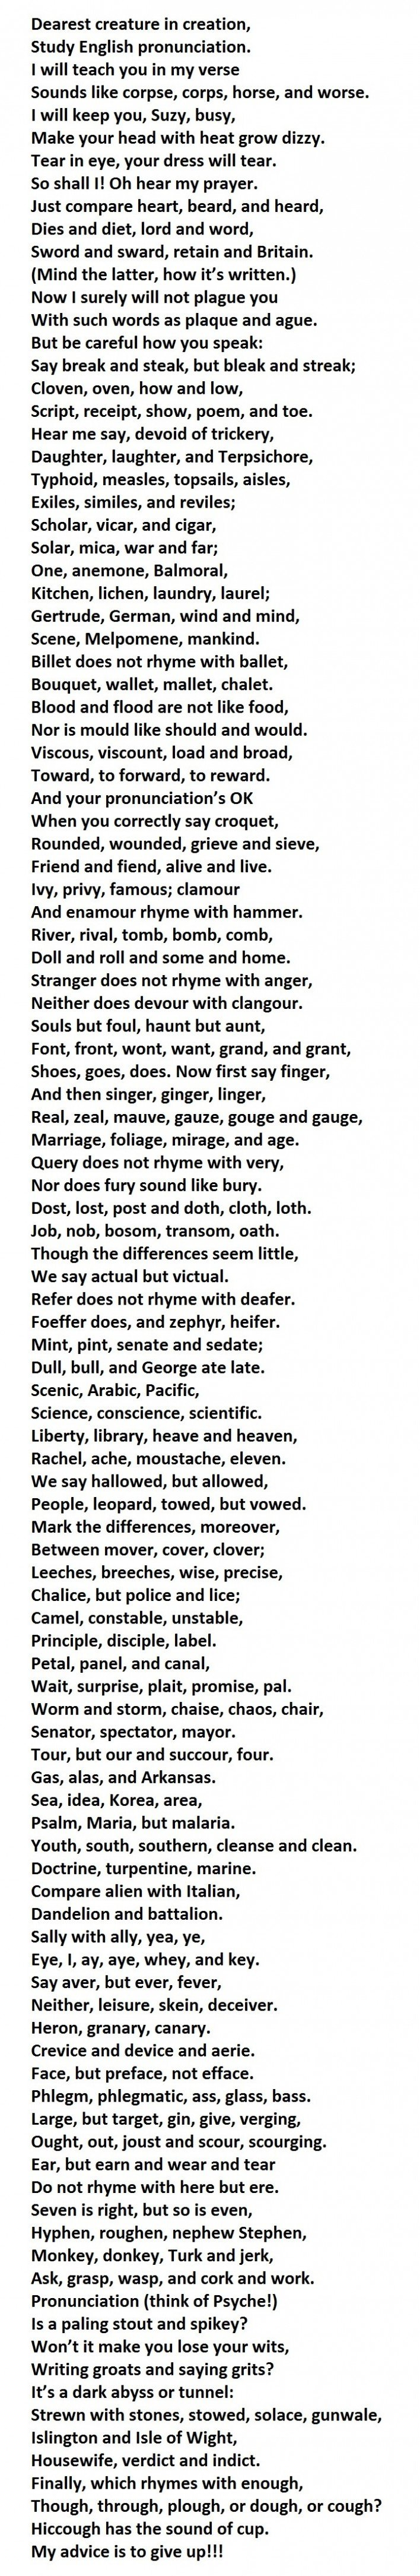 90 Of People Cannot Pronounce This Entire Poem Best Of Luck